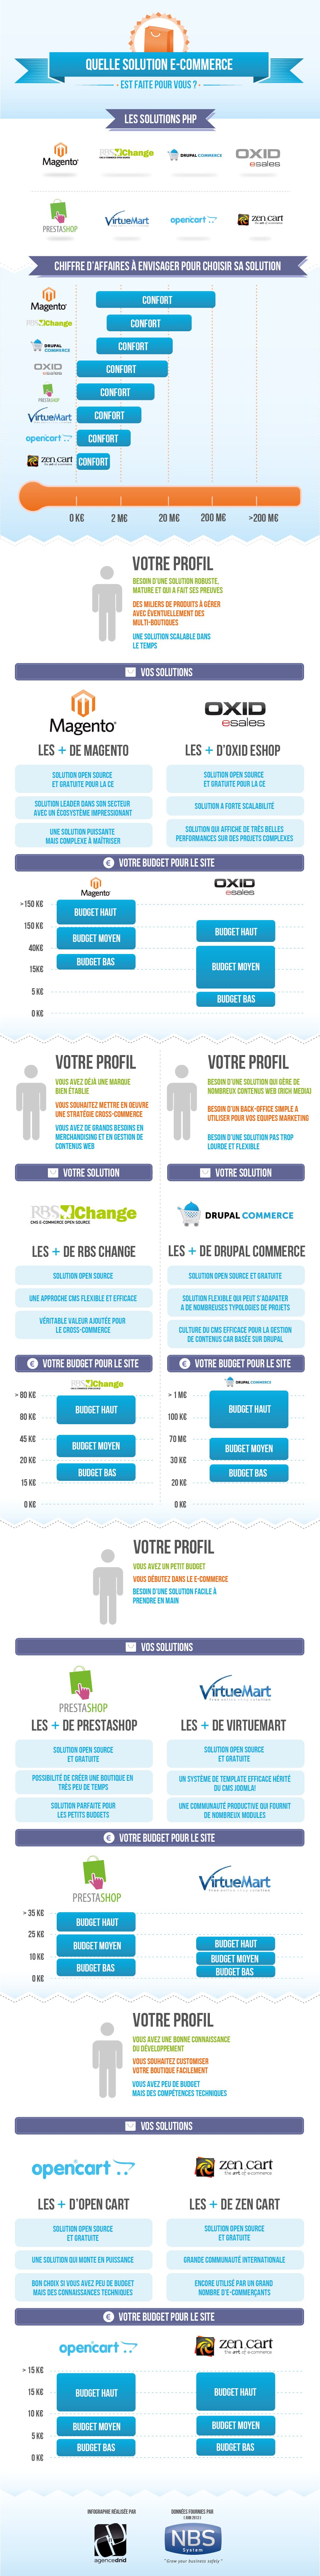 infographie-PHP-ecommerce-open-source